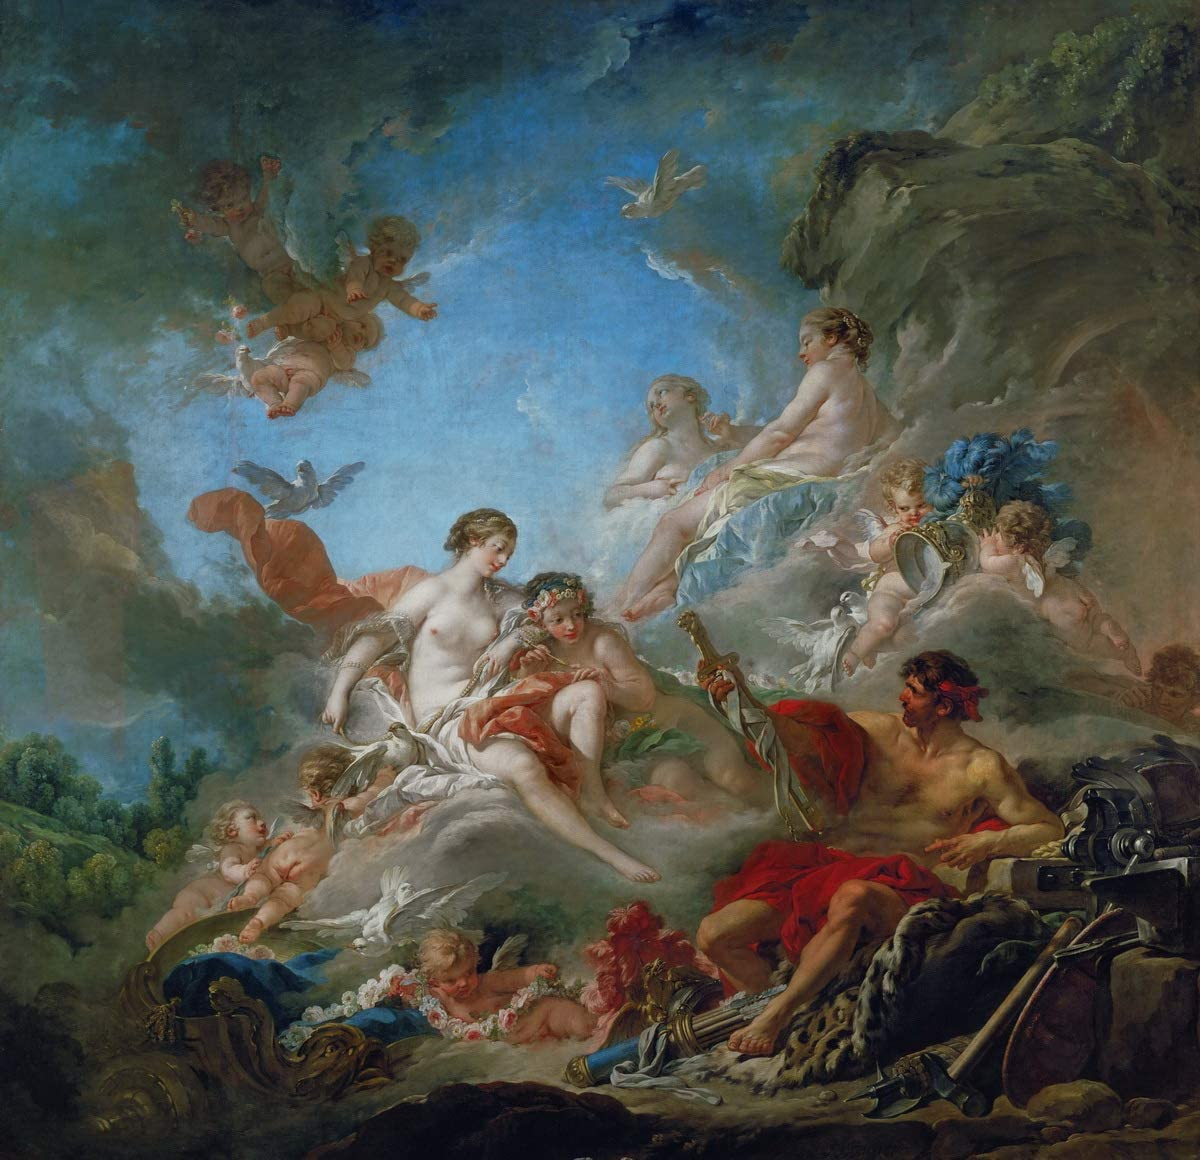 Berkin Arts Francois Boucher Some reservation Giclee Max 81% OFF Paint Canvas-Famous Print On